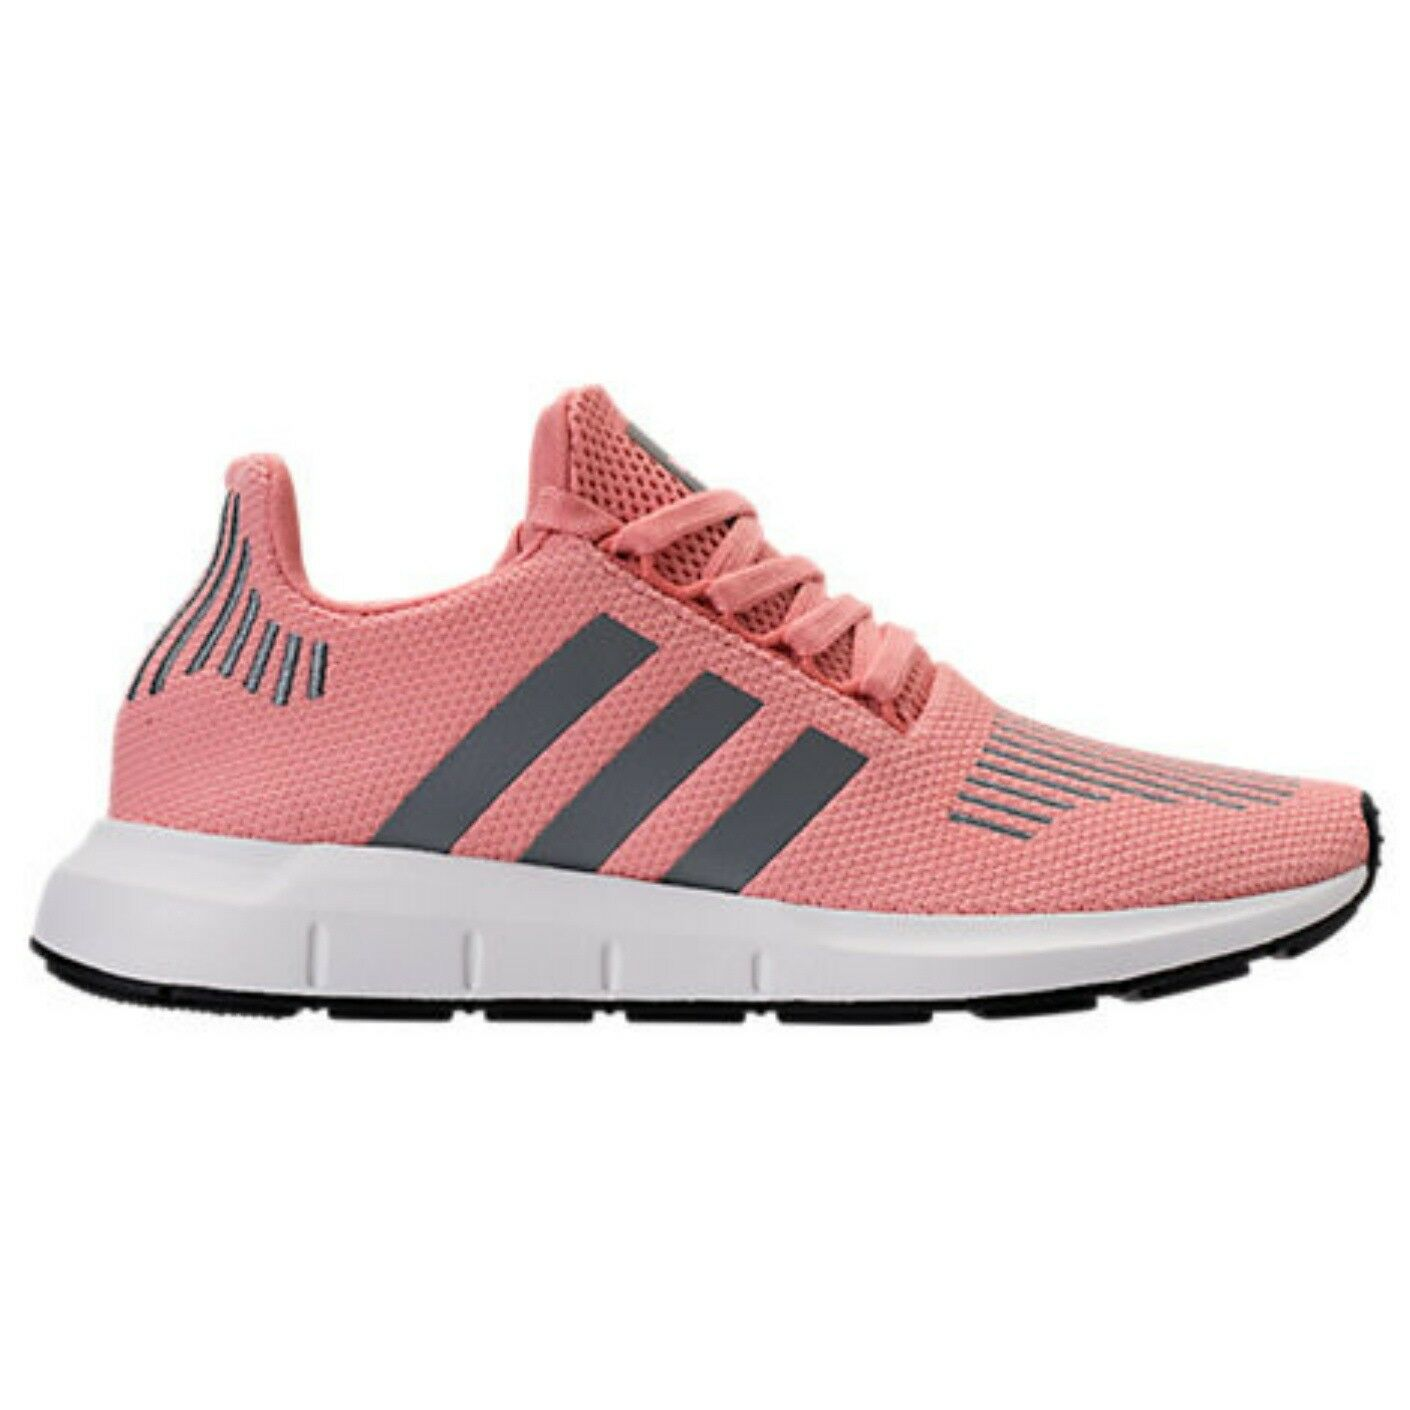 NIB ADIDAS ORIGINALS SWIFT RUN WOMENS TRACE PINK/GREY/CRYSTAL SNEAKERS RUNNING~7 Special limited time